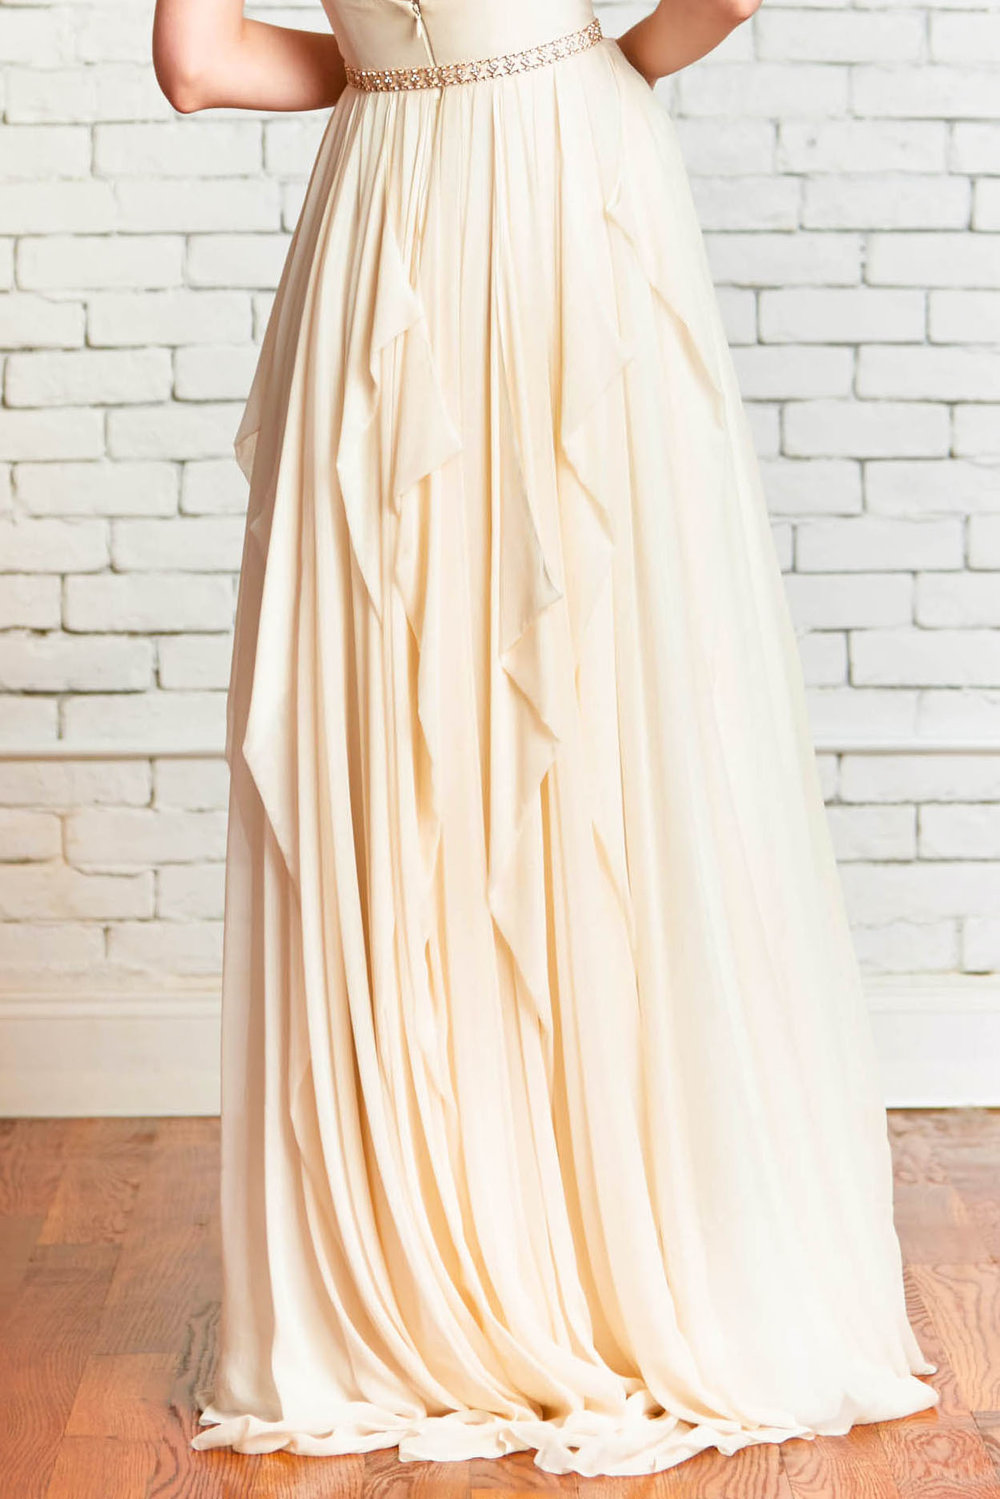 Sierra-Back-skirt_A-line_Boho_Romantic_Chiffon_Skirt.jpg